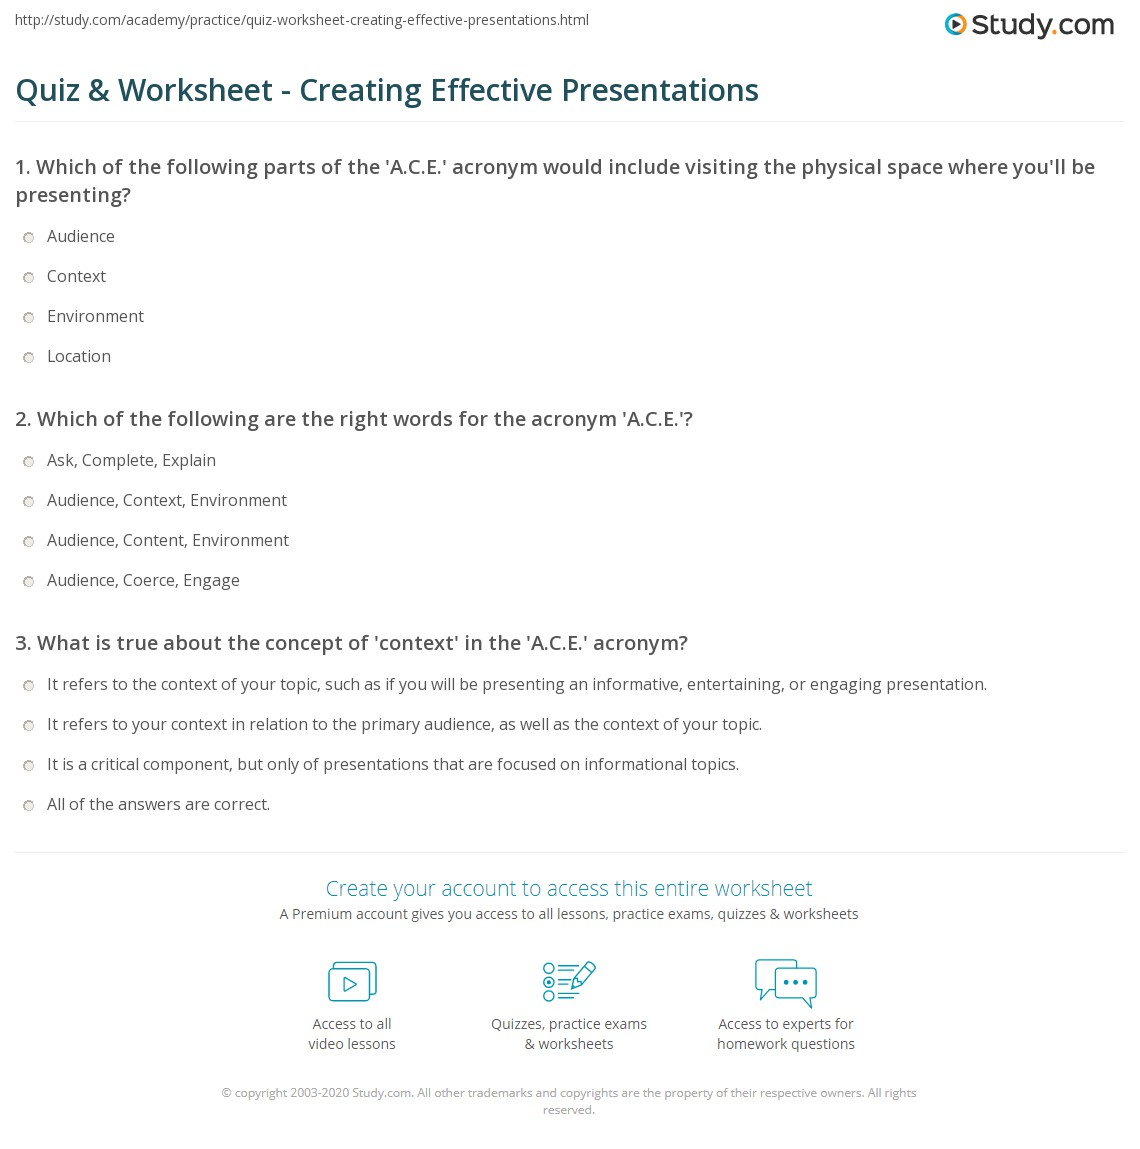 worksheet Organizing Ideas Worksheets workbooks organizing ideas worksheets free printable quiz worksheet creating effective presentations study com ideas